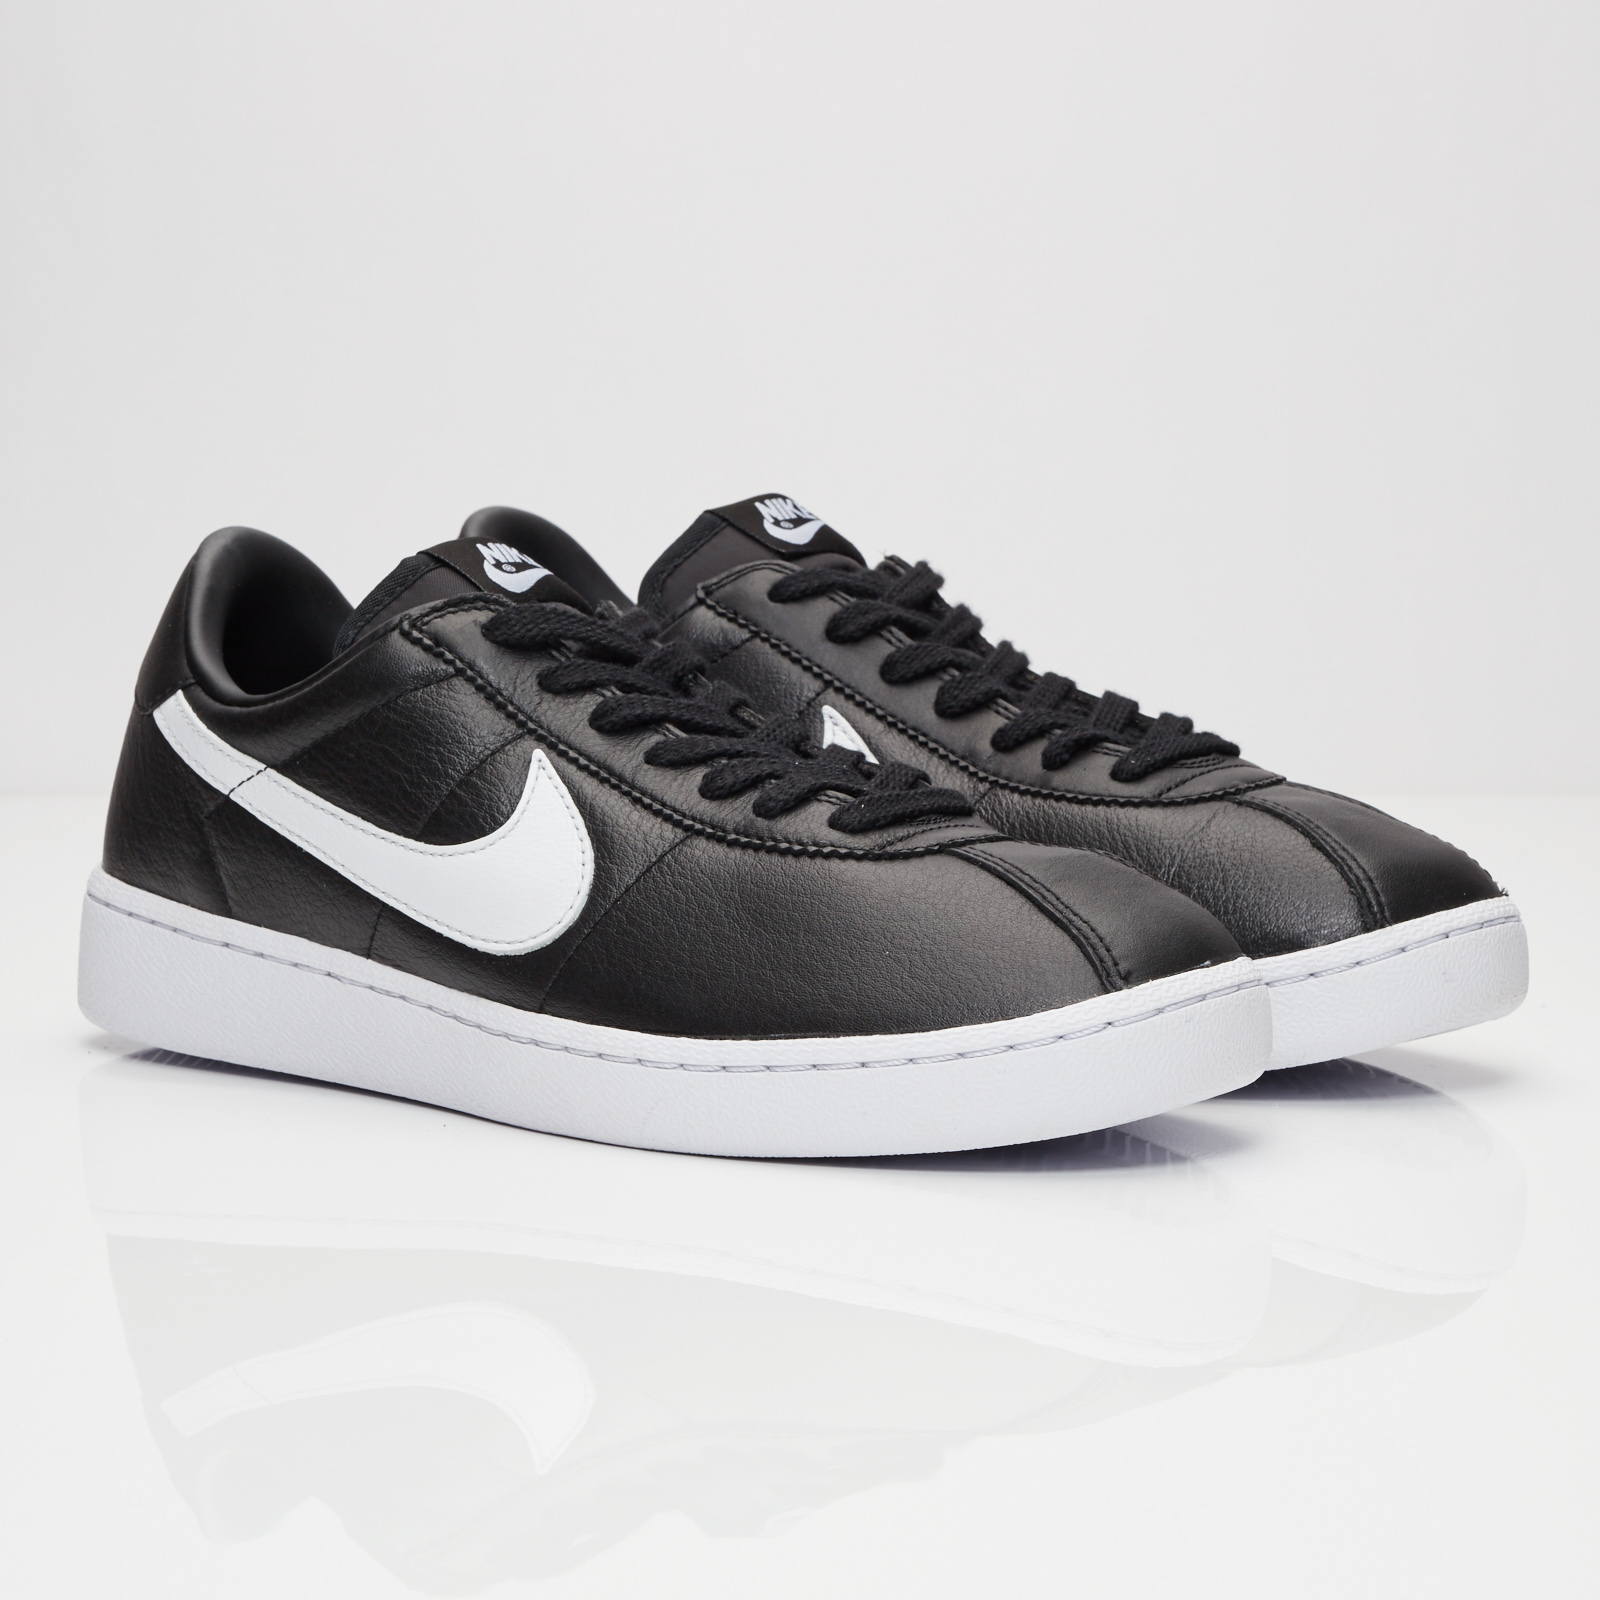 96a89bc00d08 ... online for sale Nike Bruin QS - 842956-001 - Sneakersnstuff sneakers  stree ...